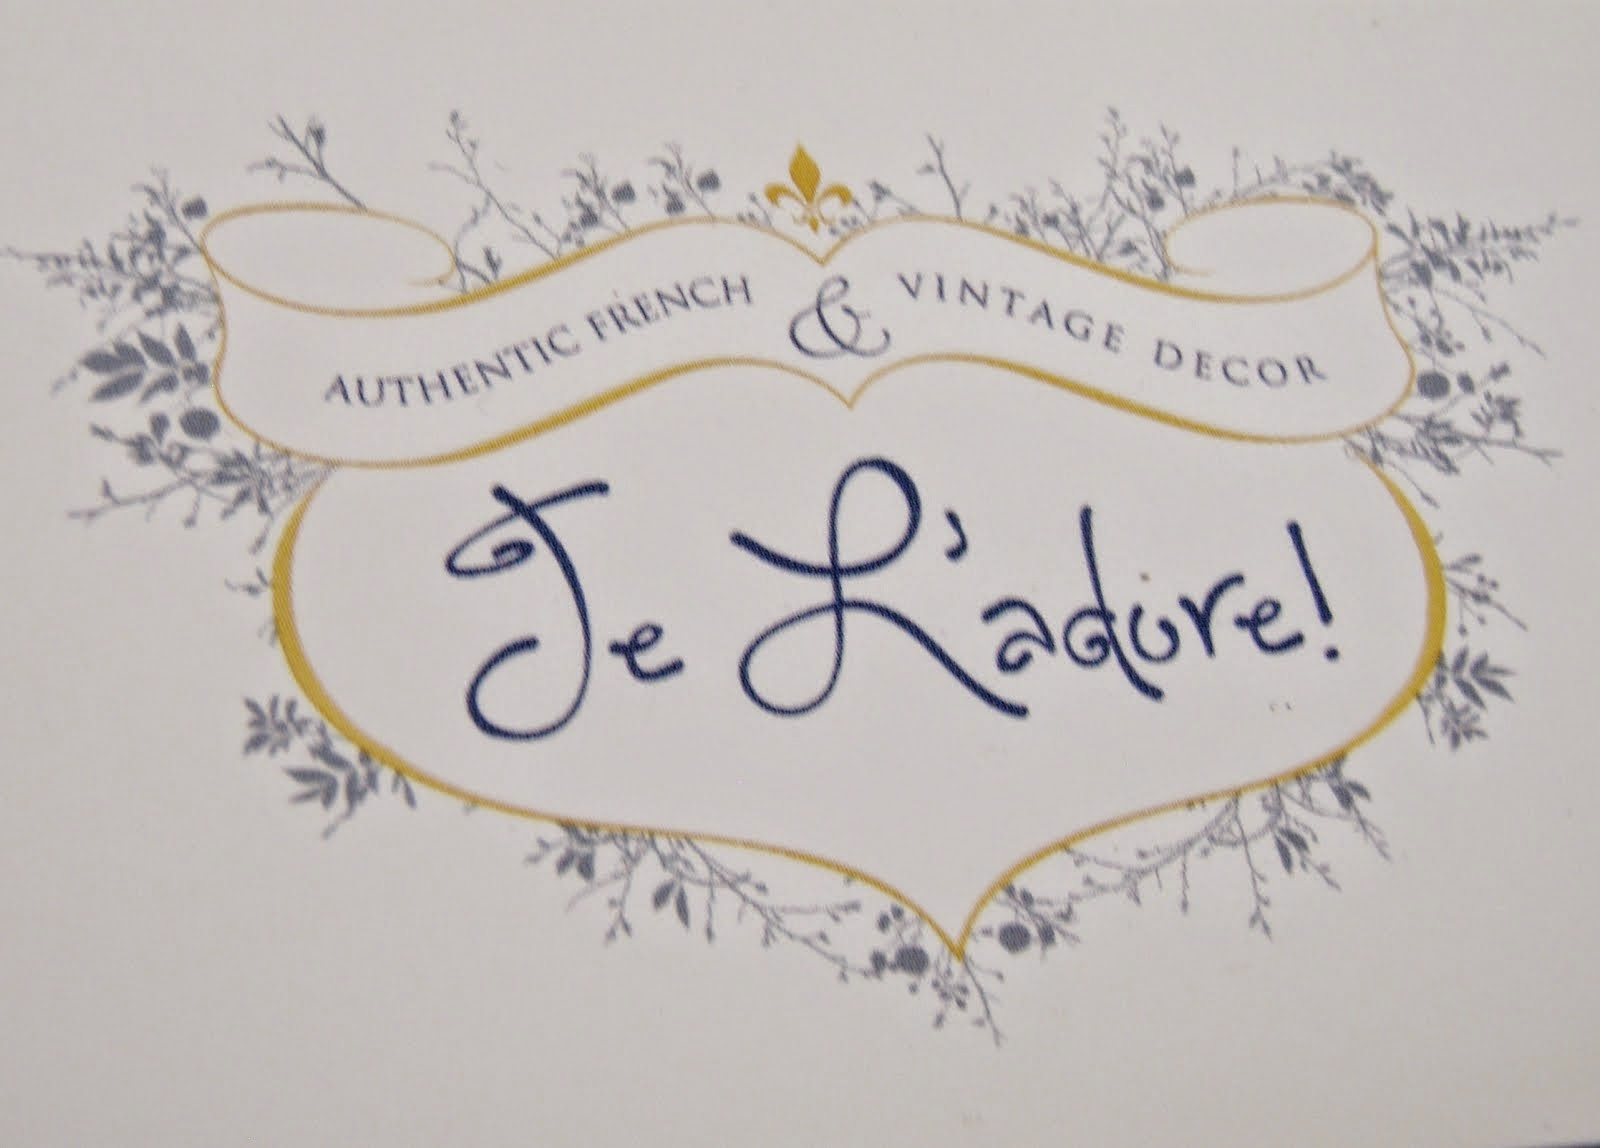 Cabin & Cottage is now at Je L'Adore! An Authentic French & Vintage Decor Boutique.